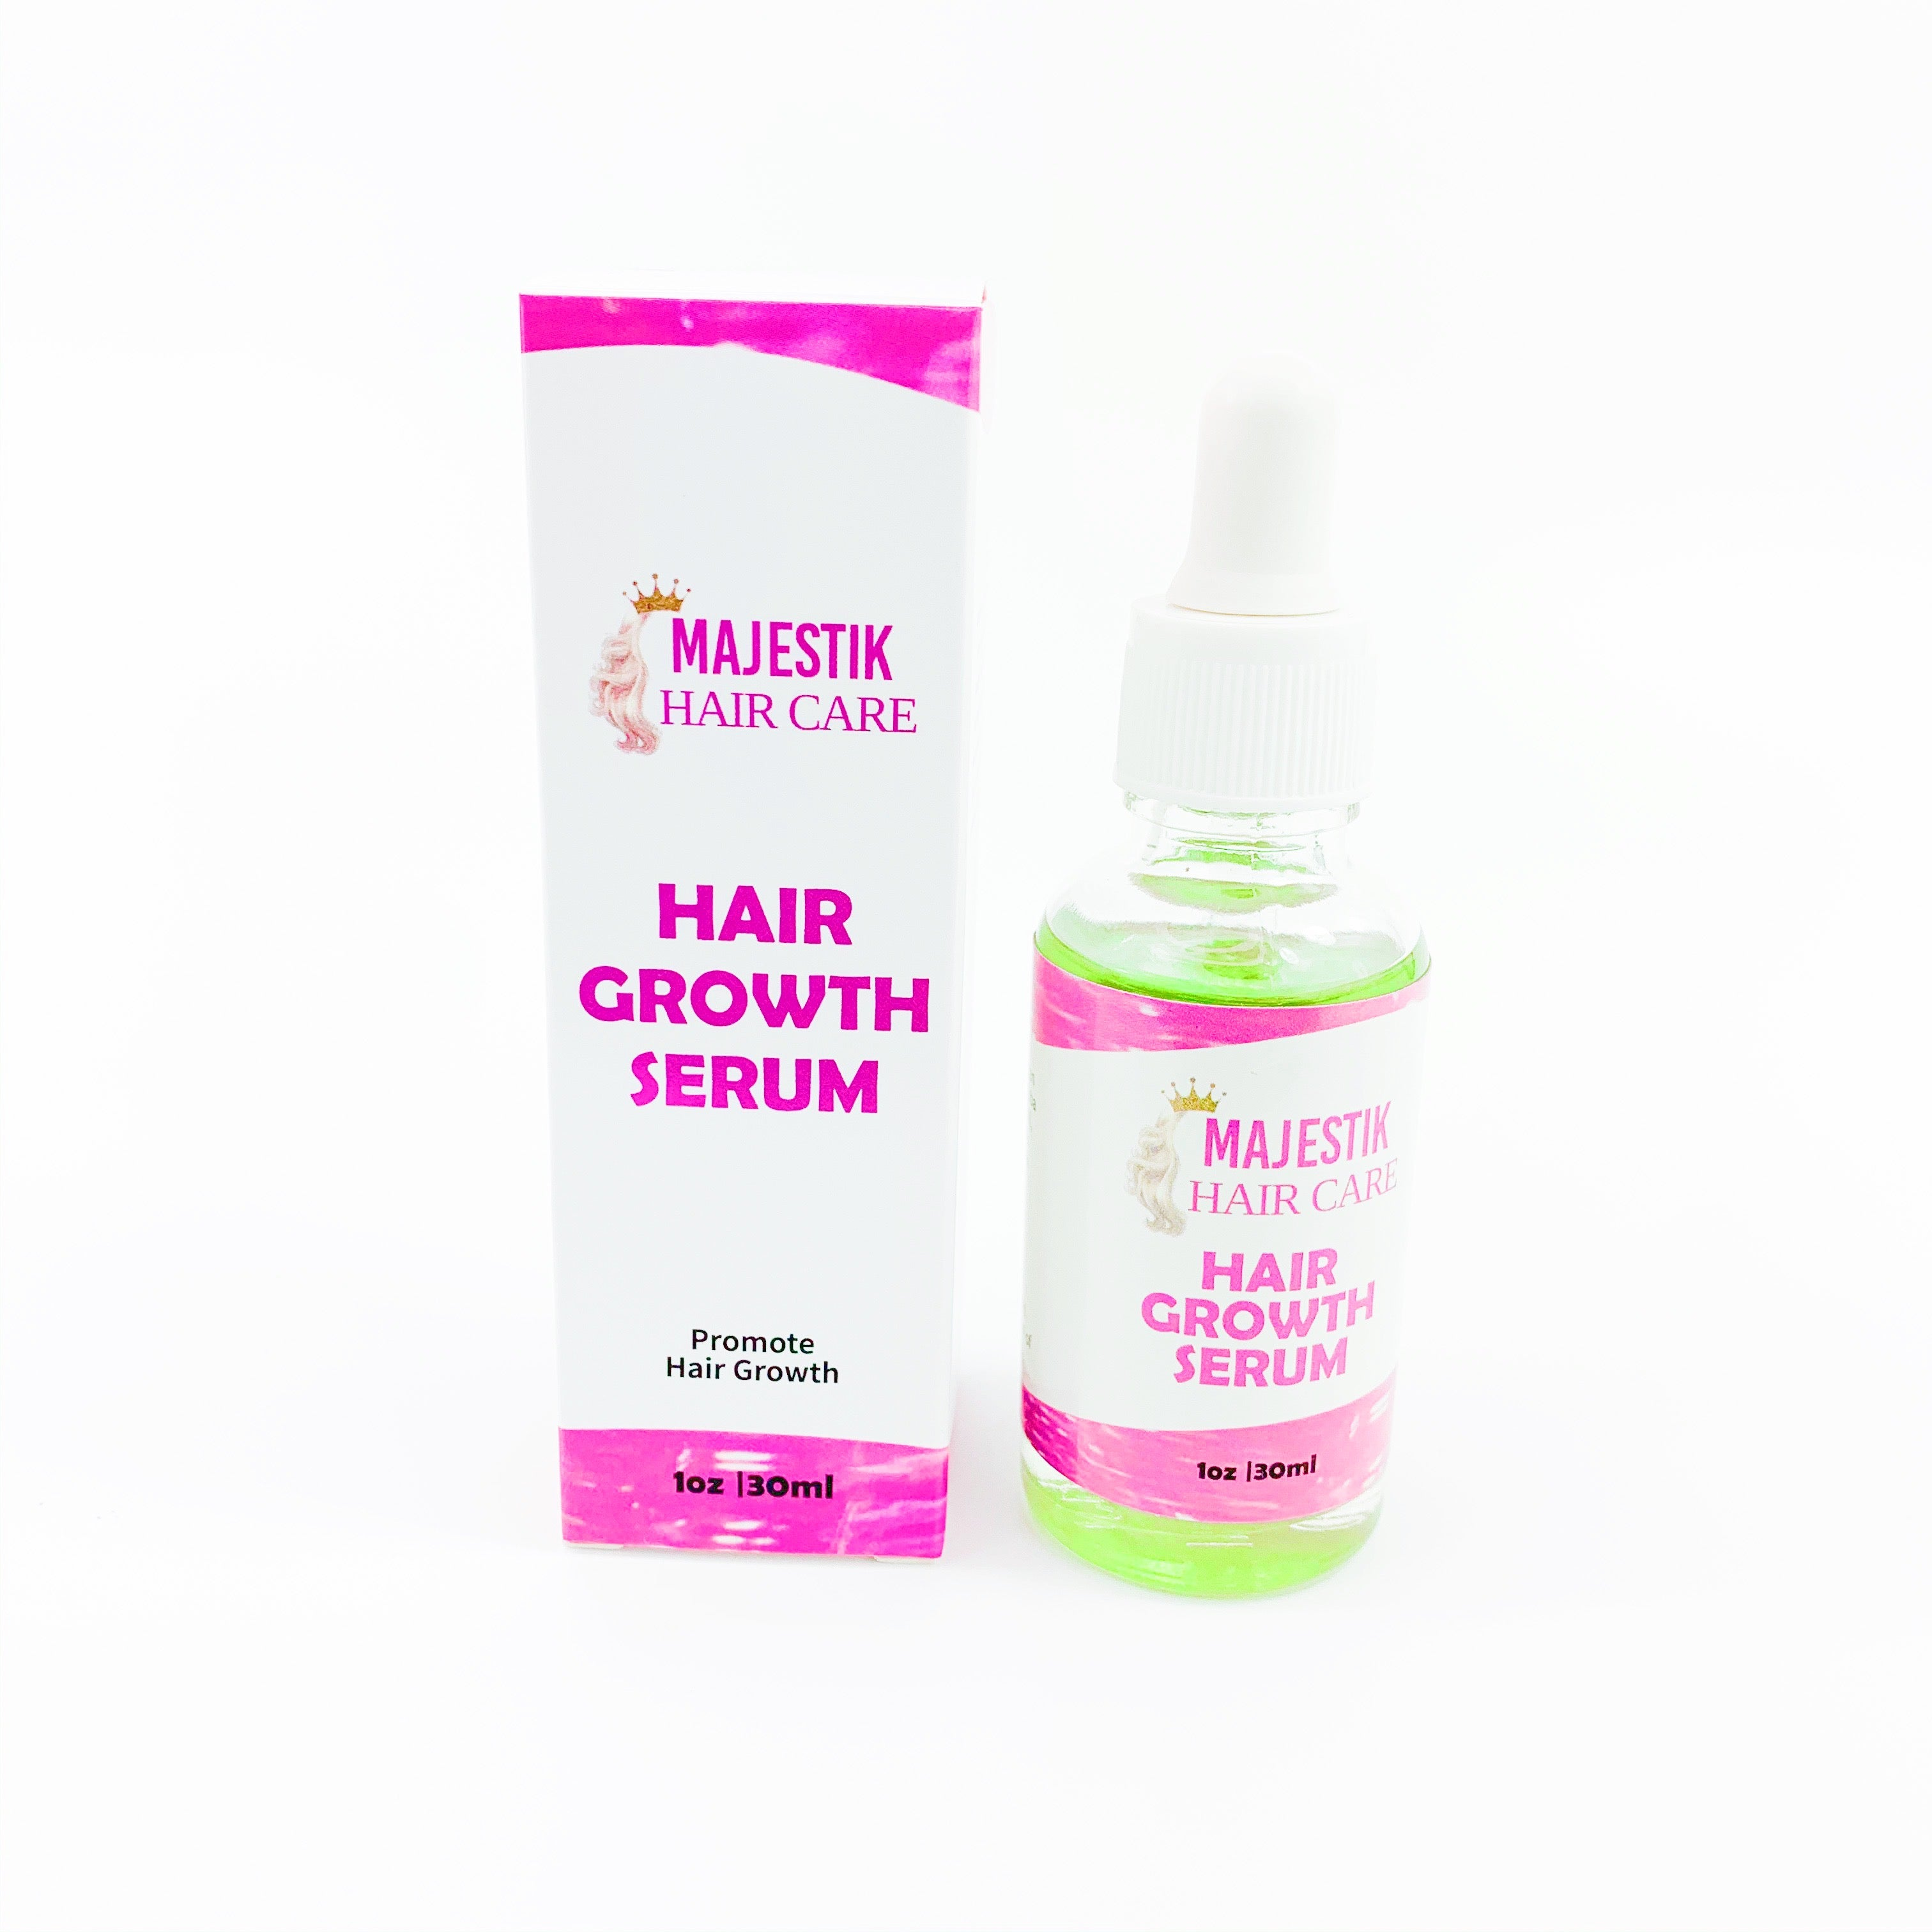 Majestik's Hair Growth Serum (Scented)